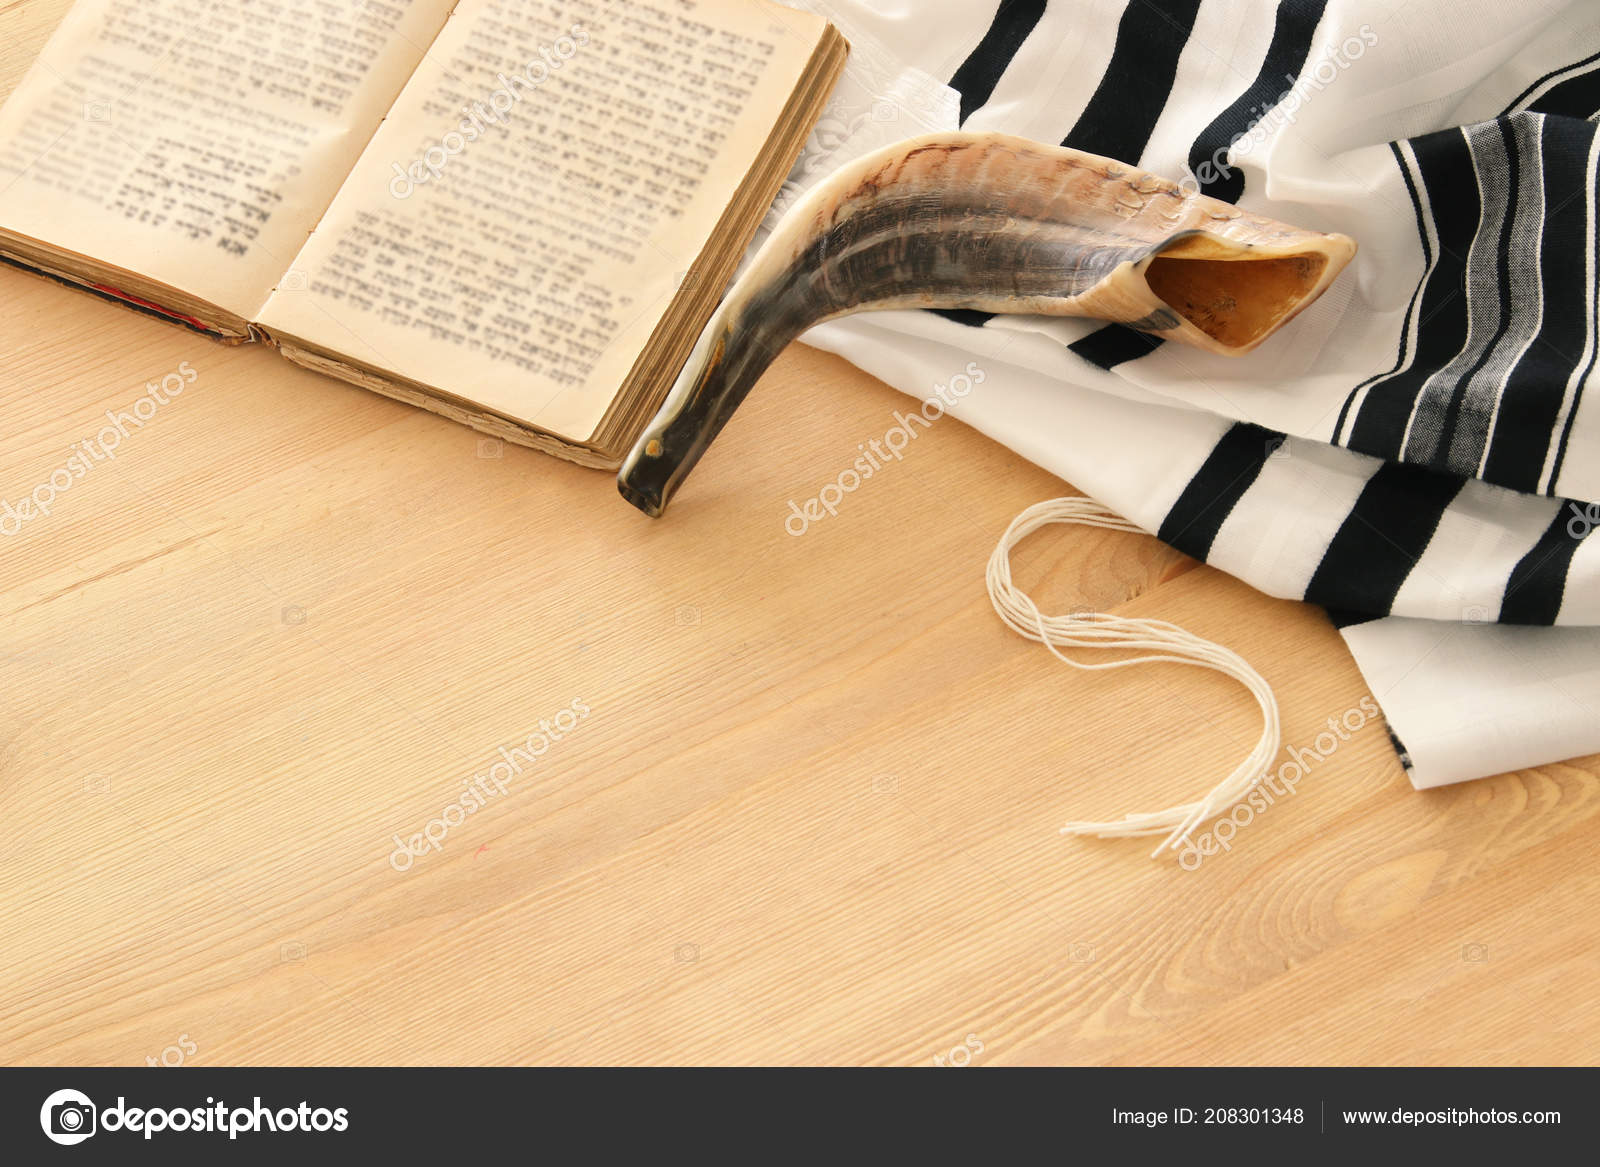 Prayer Shawl Tallit Prayer Book Shofar Horn Jewish Religious Symbols